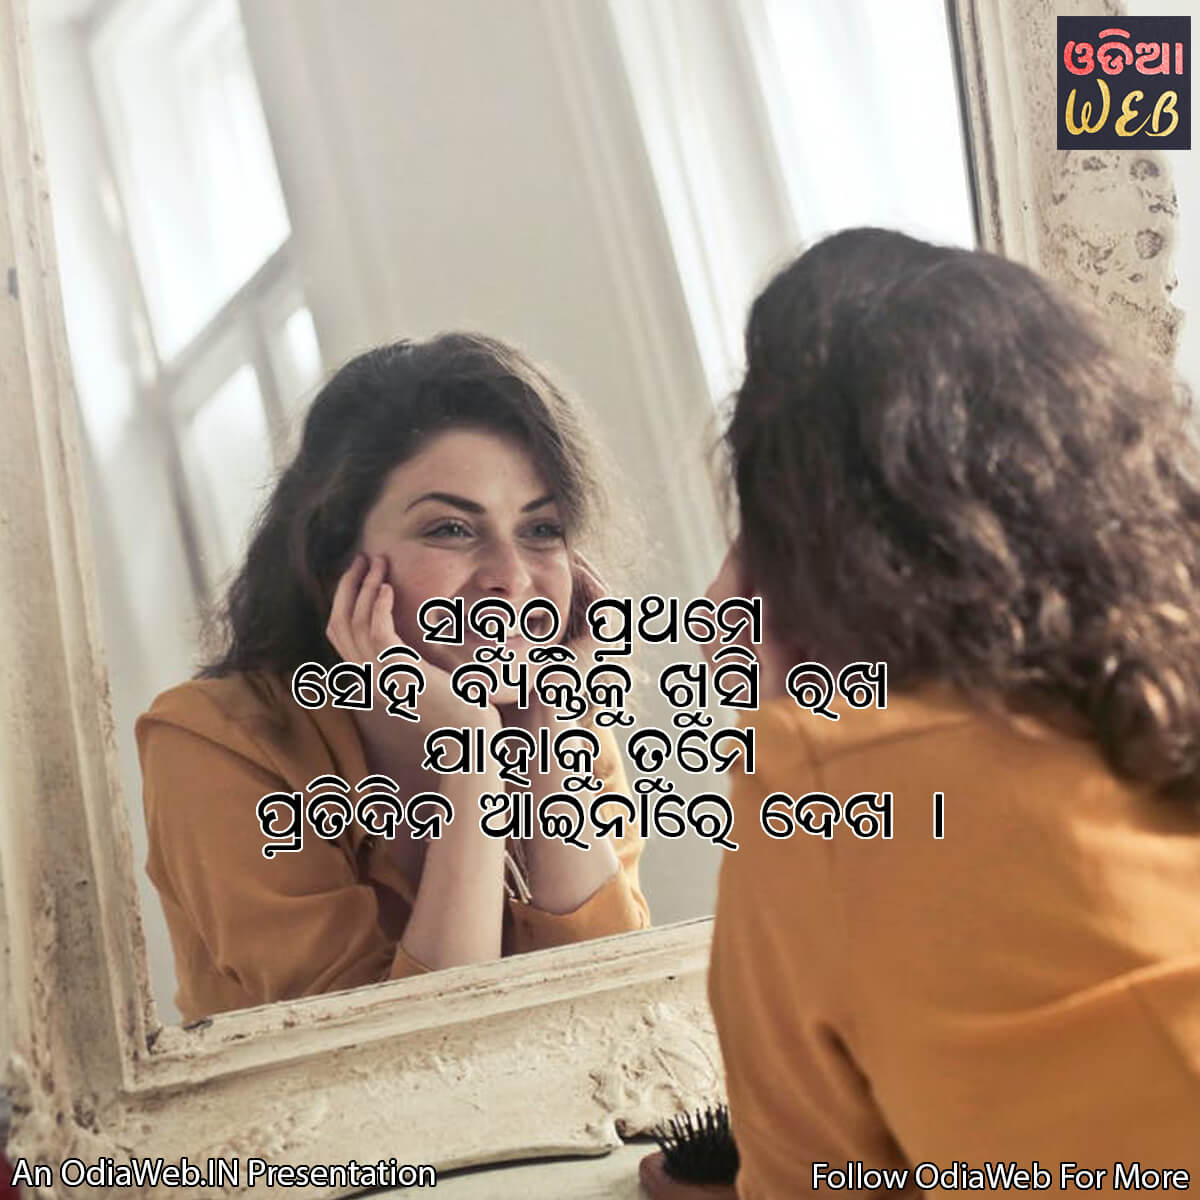 Odia happiness Quotes1